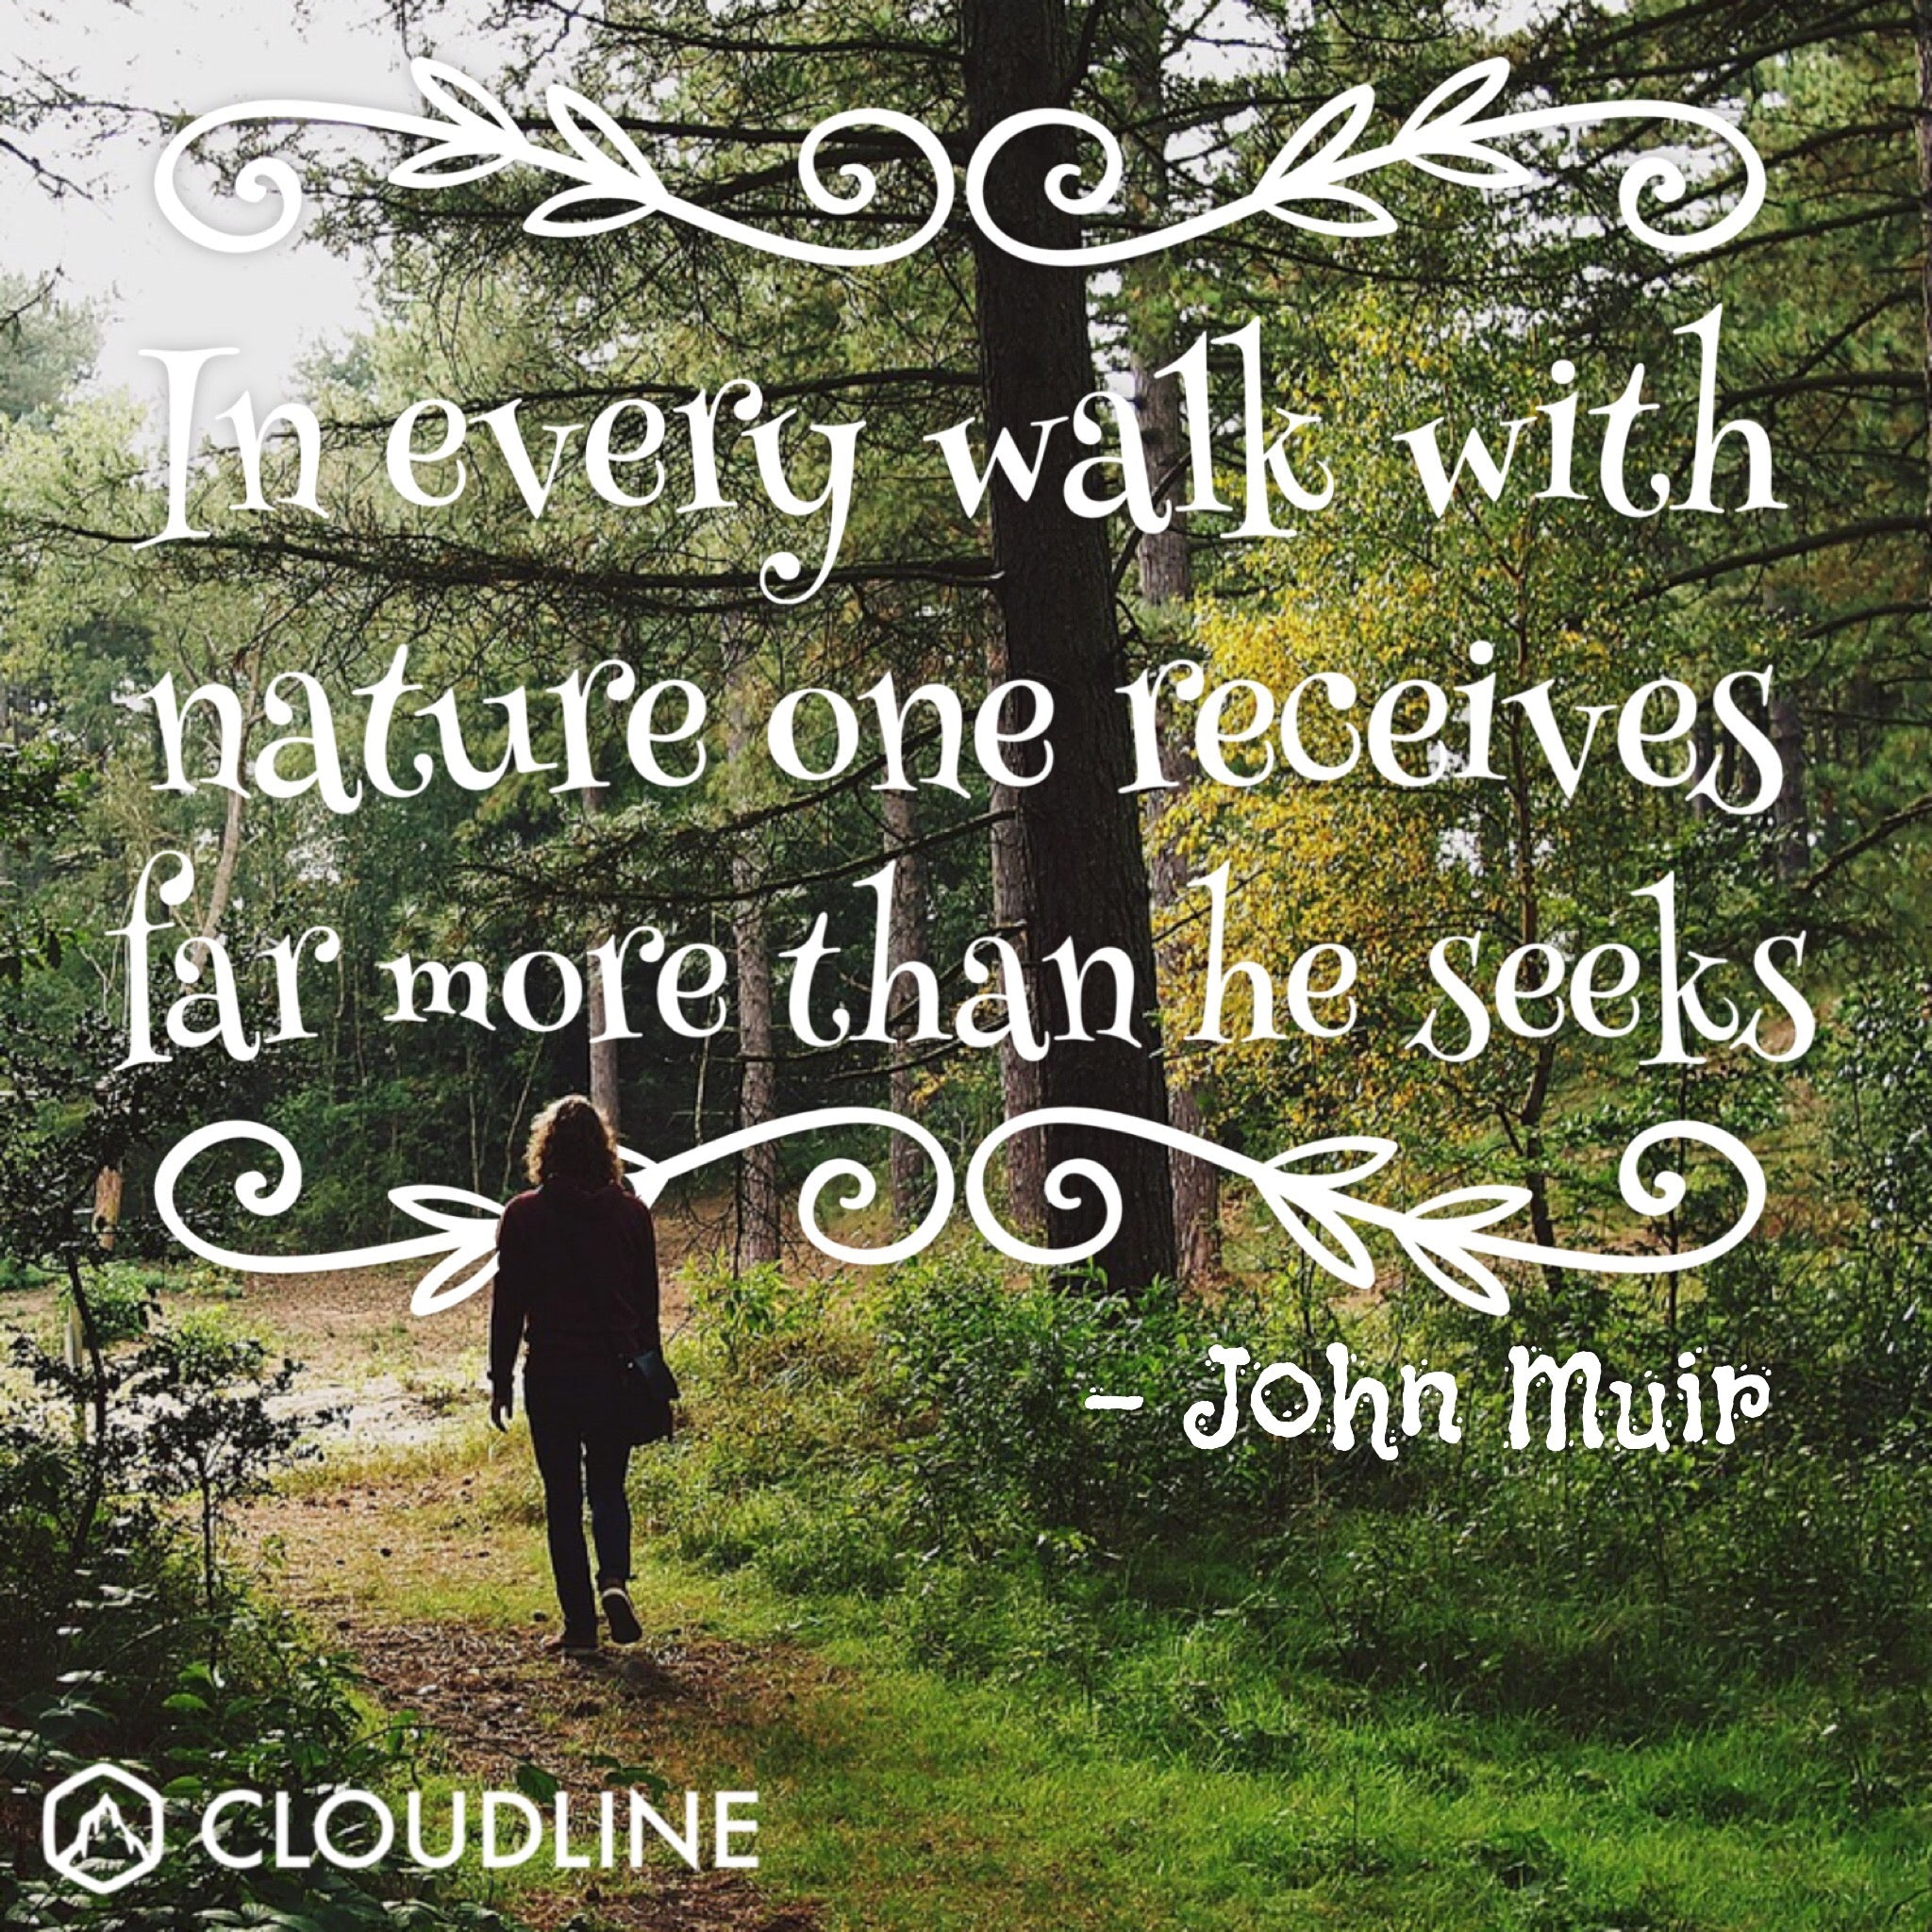 John Muir Quotes That Will Make You Want To Get Outside